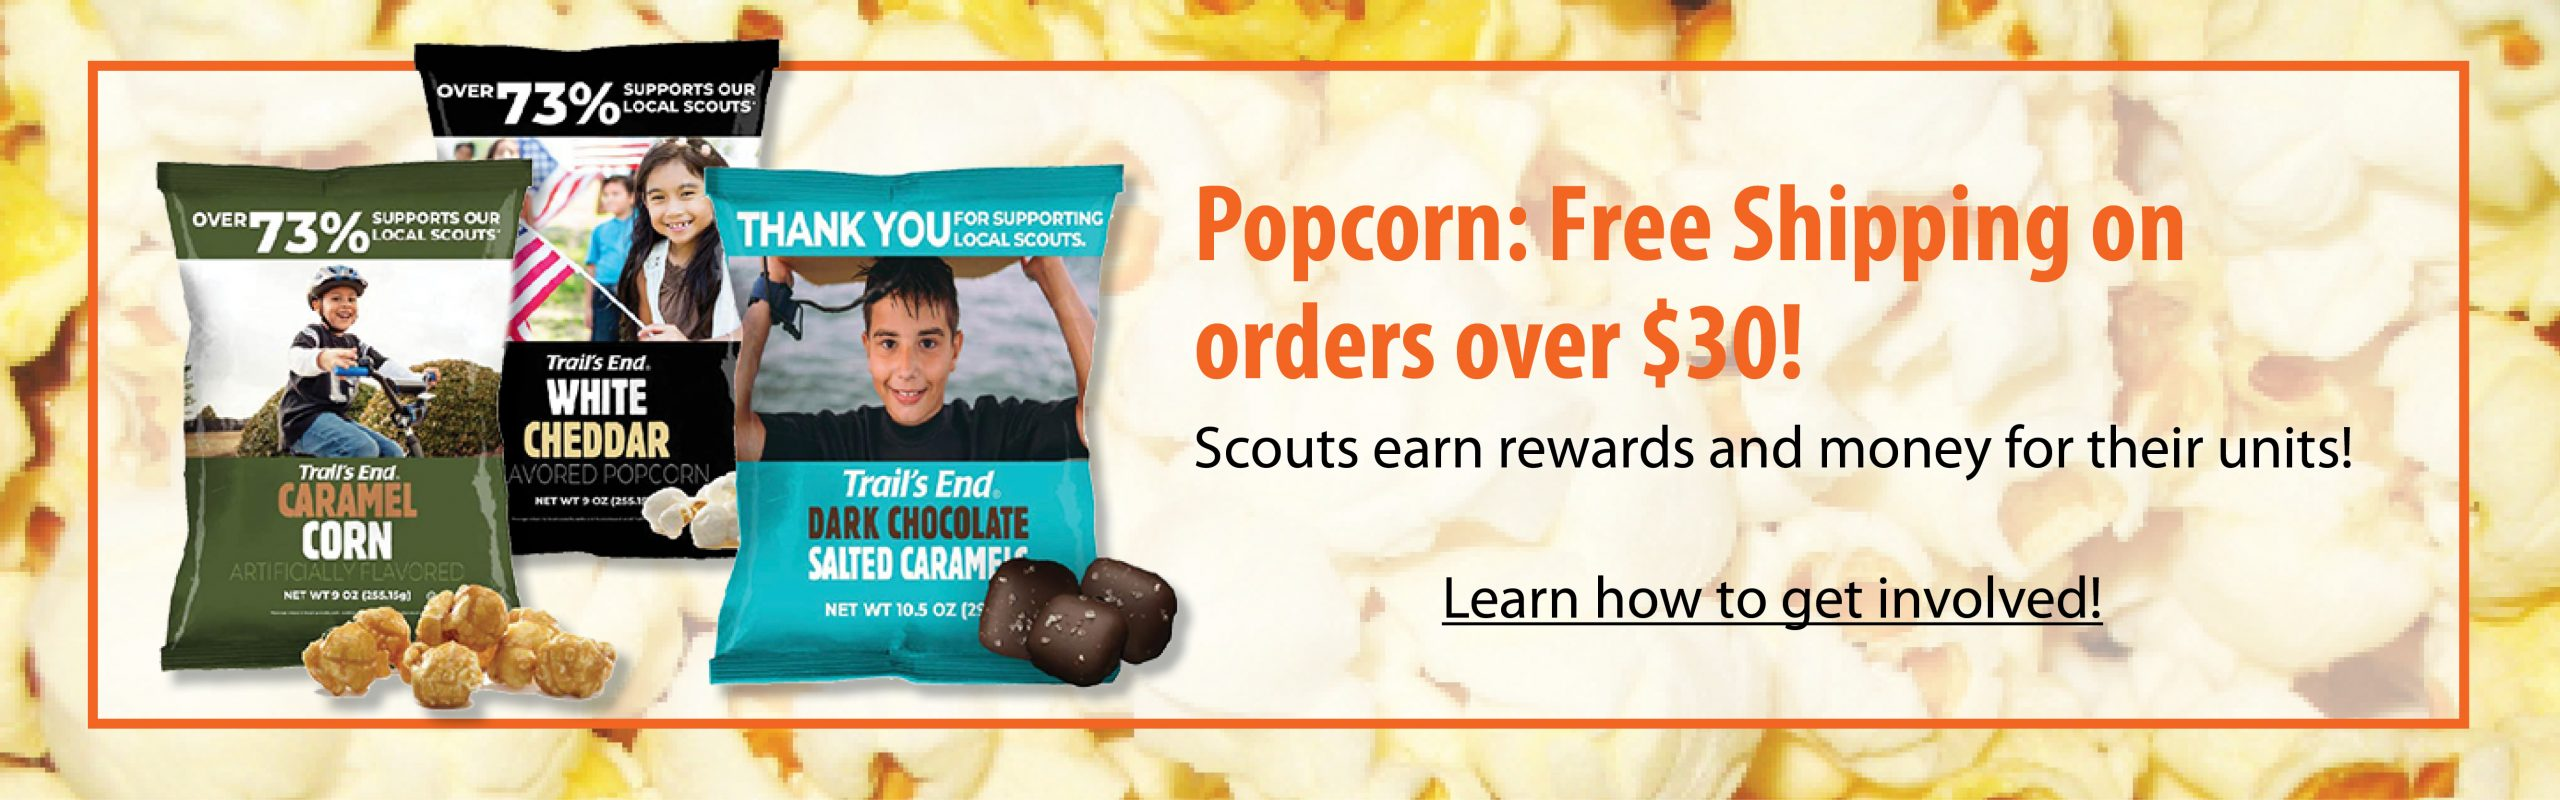 Popcorn: Free shipping on orders over $30